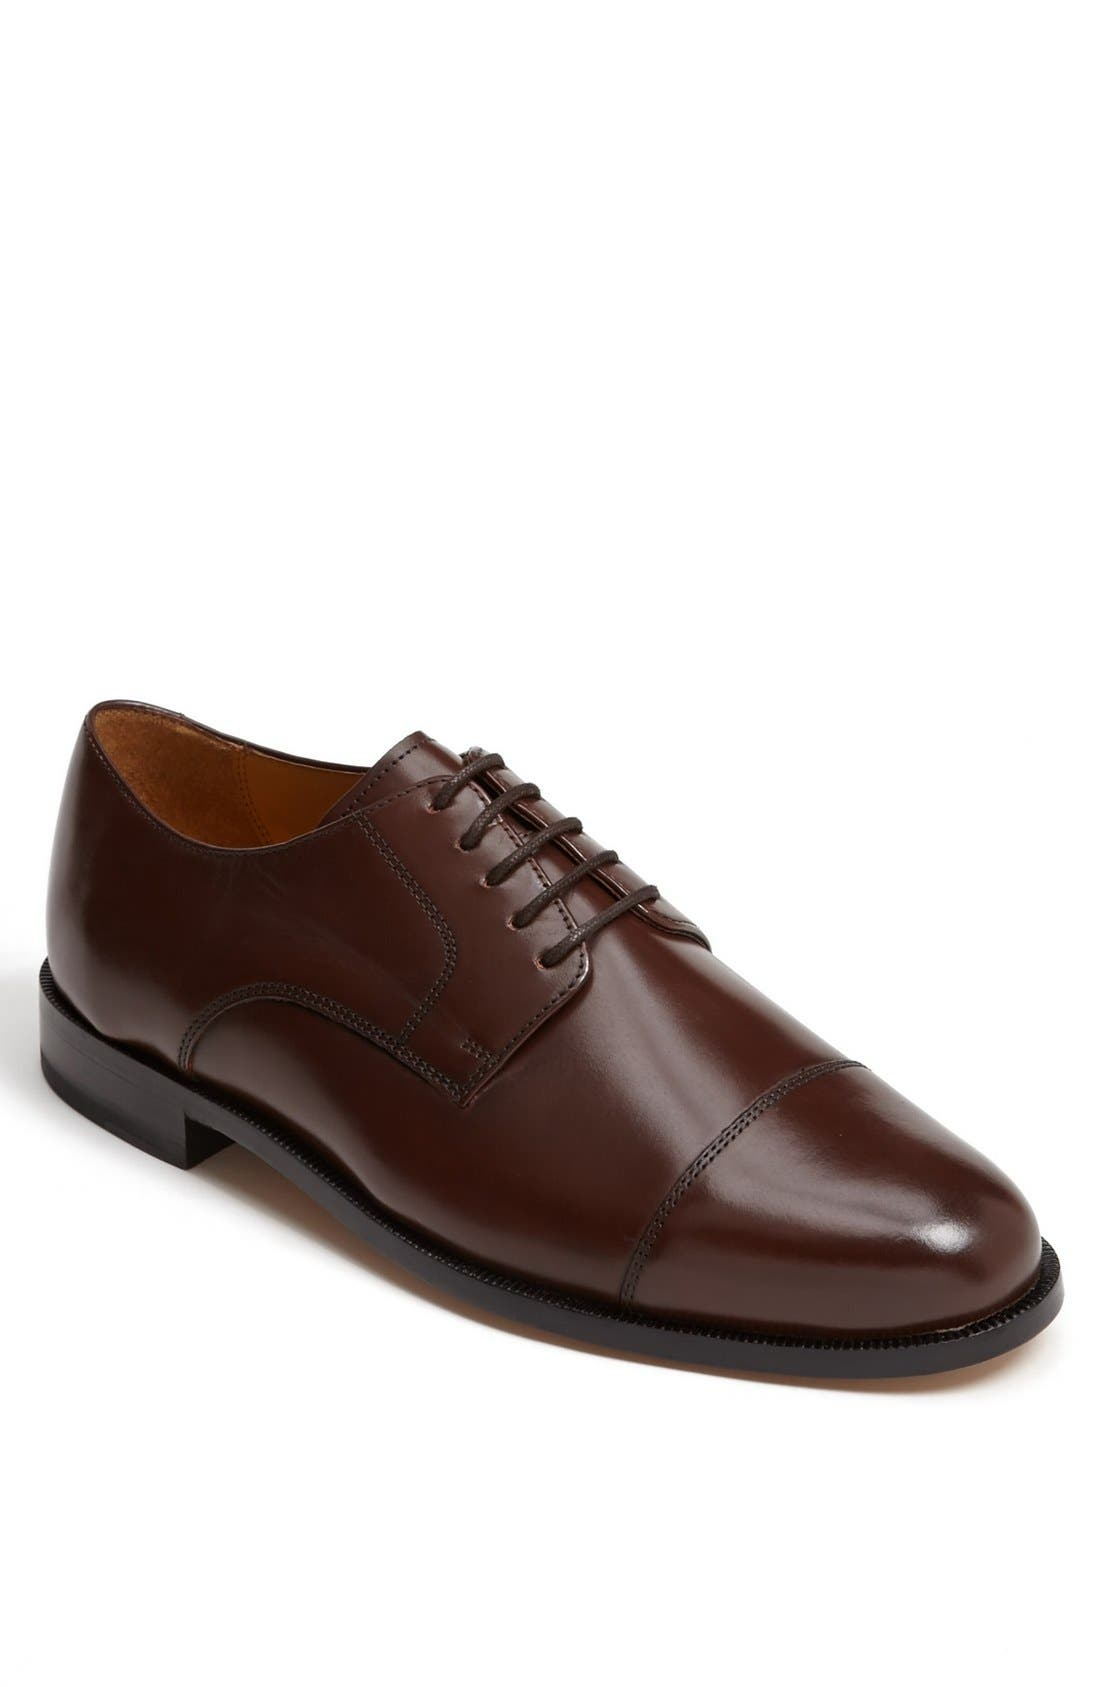 Main Image - Cole Haan 'Cassady' Cap Toe Derby   (Men)